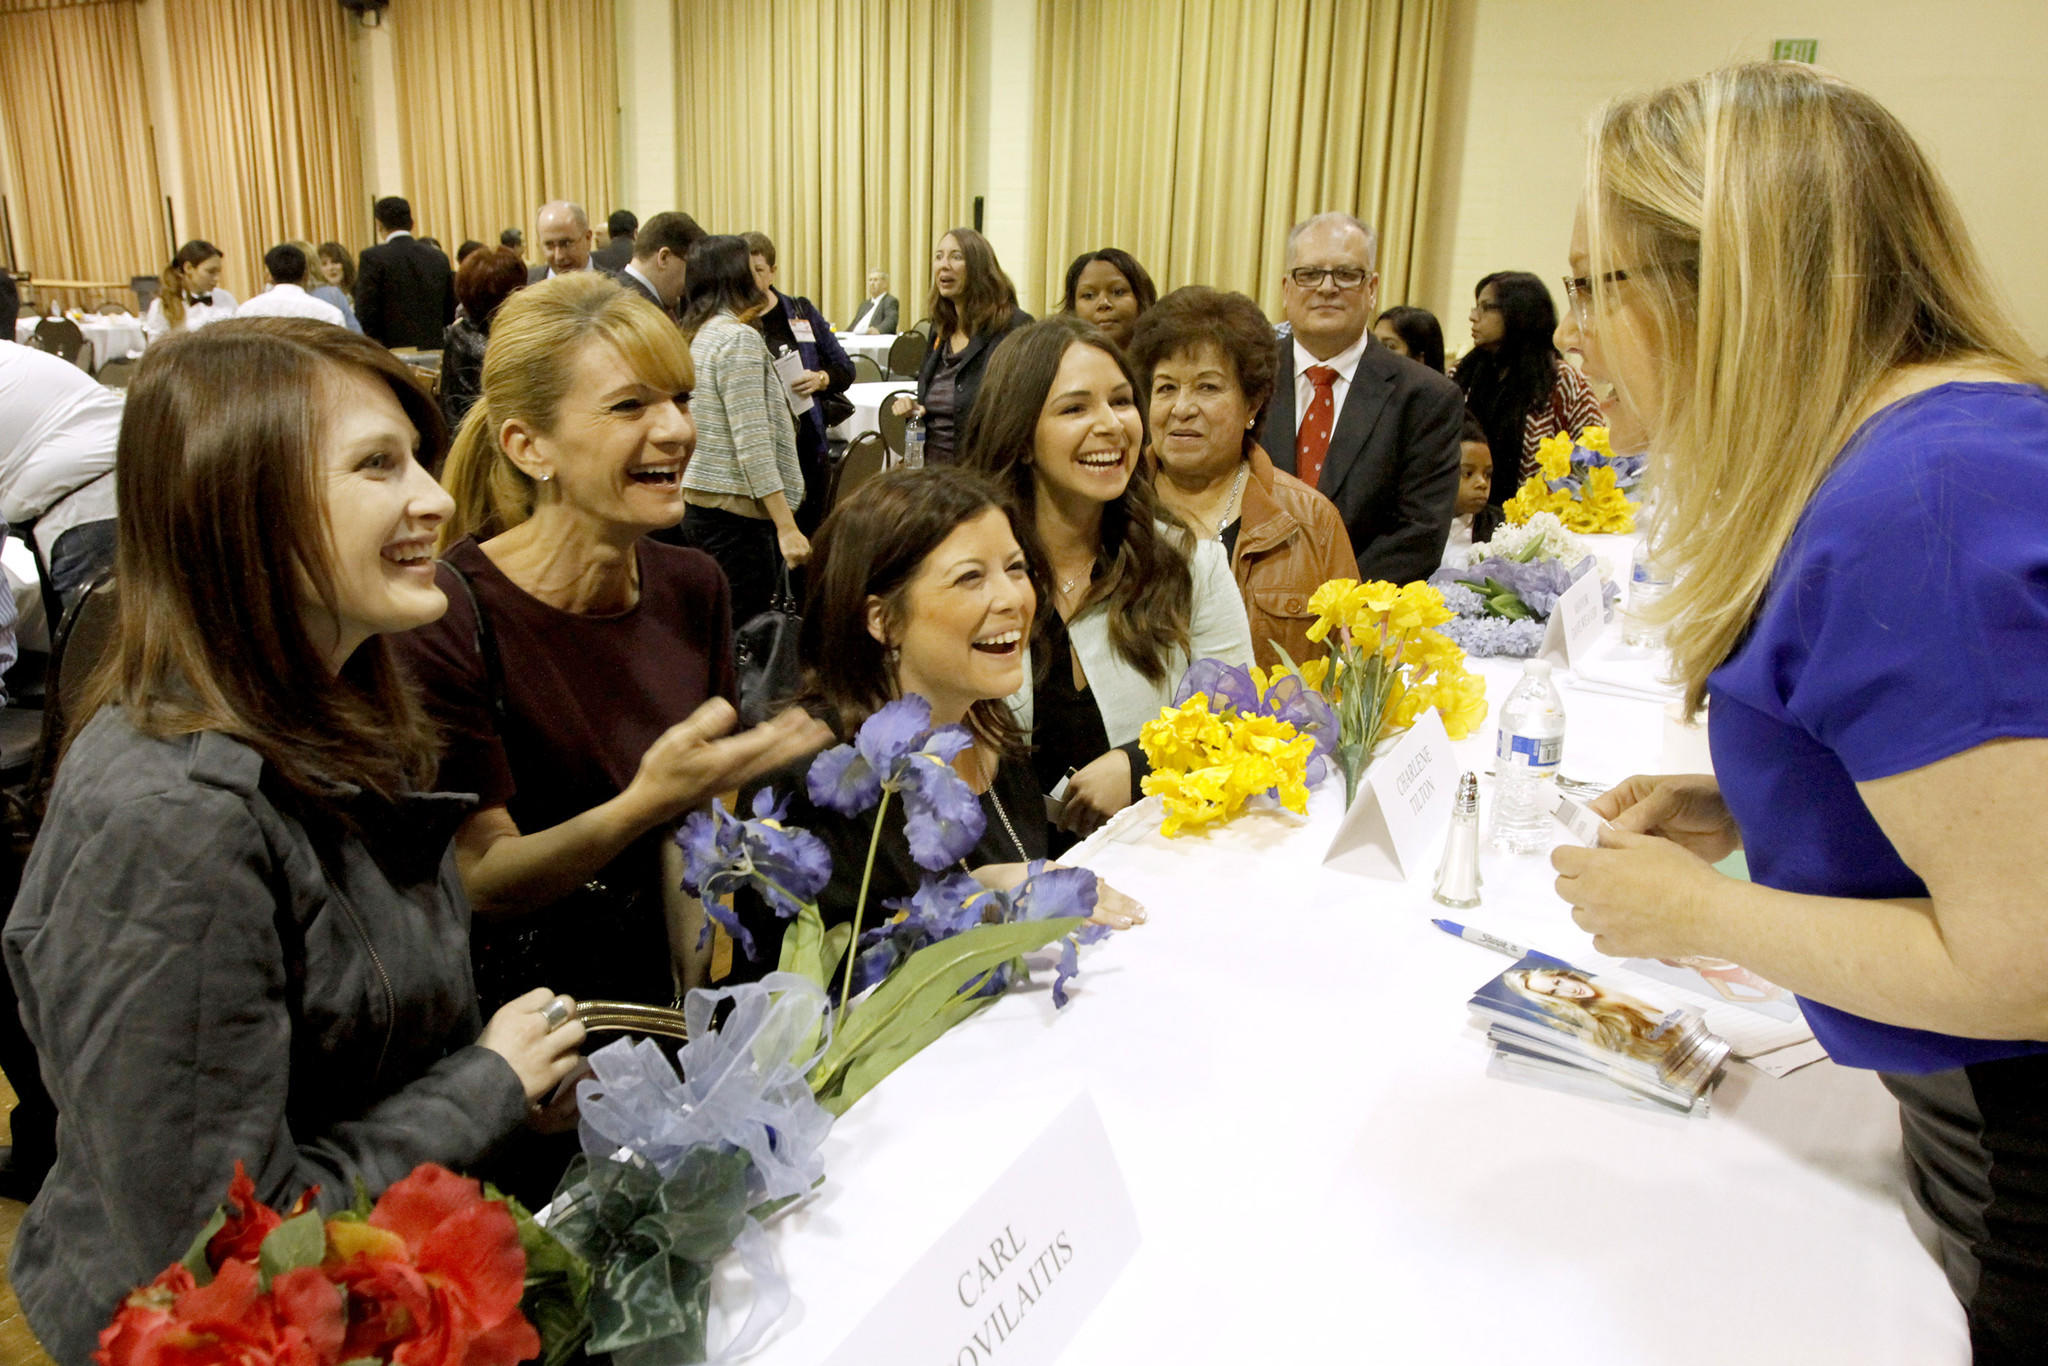 Fans met with inspirational speaker and actress Charlene Tilton after the 51st annual Glendale Mayor's Prayer Breakfast held at the Glendale Civic Auditorium on Thursday, March 13, 2014. (